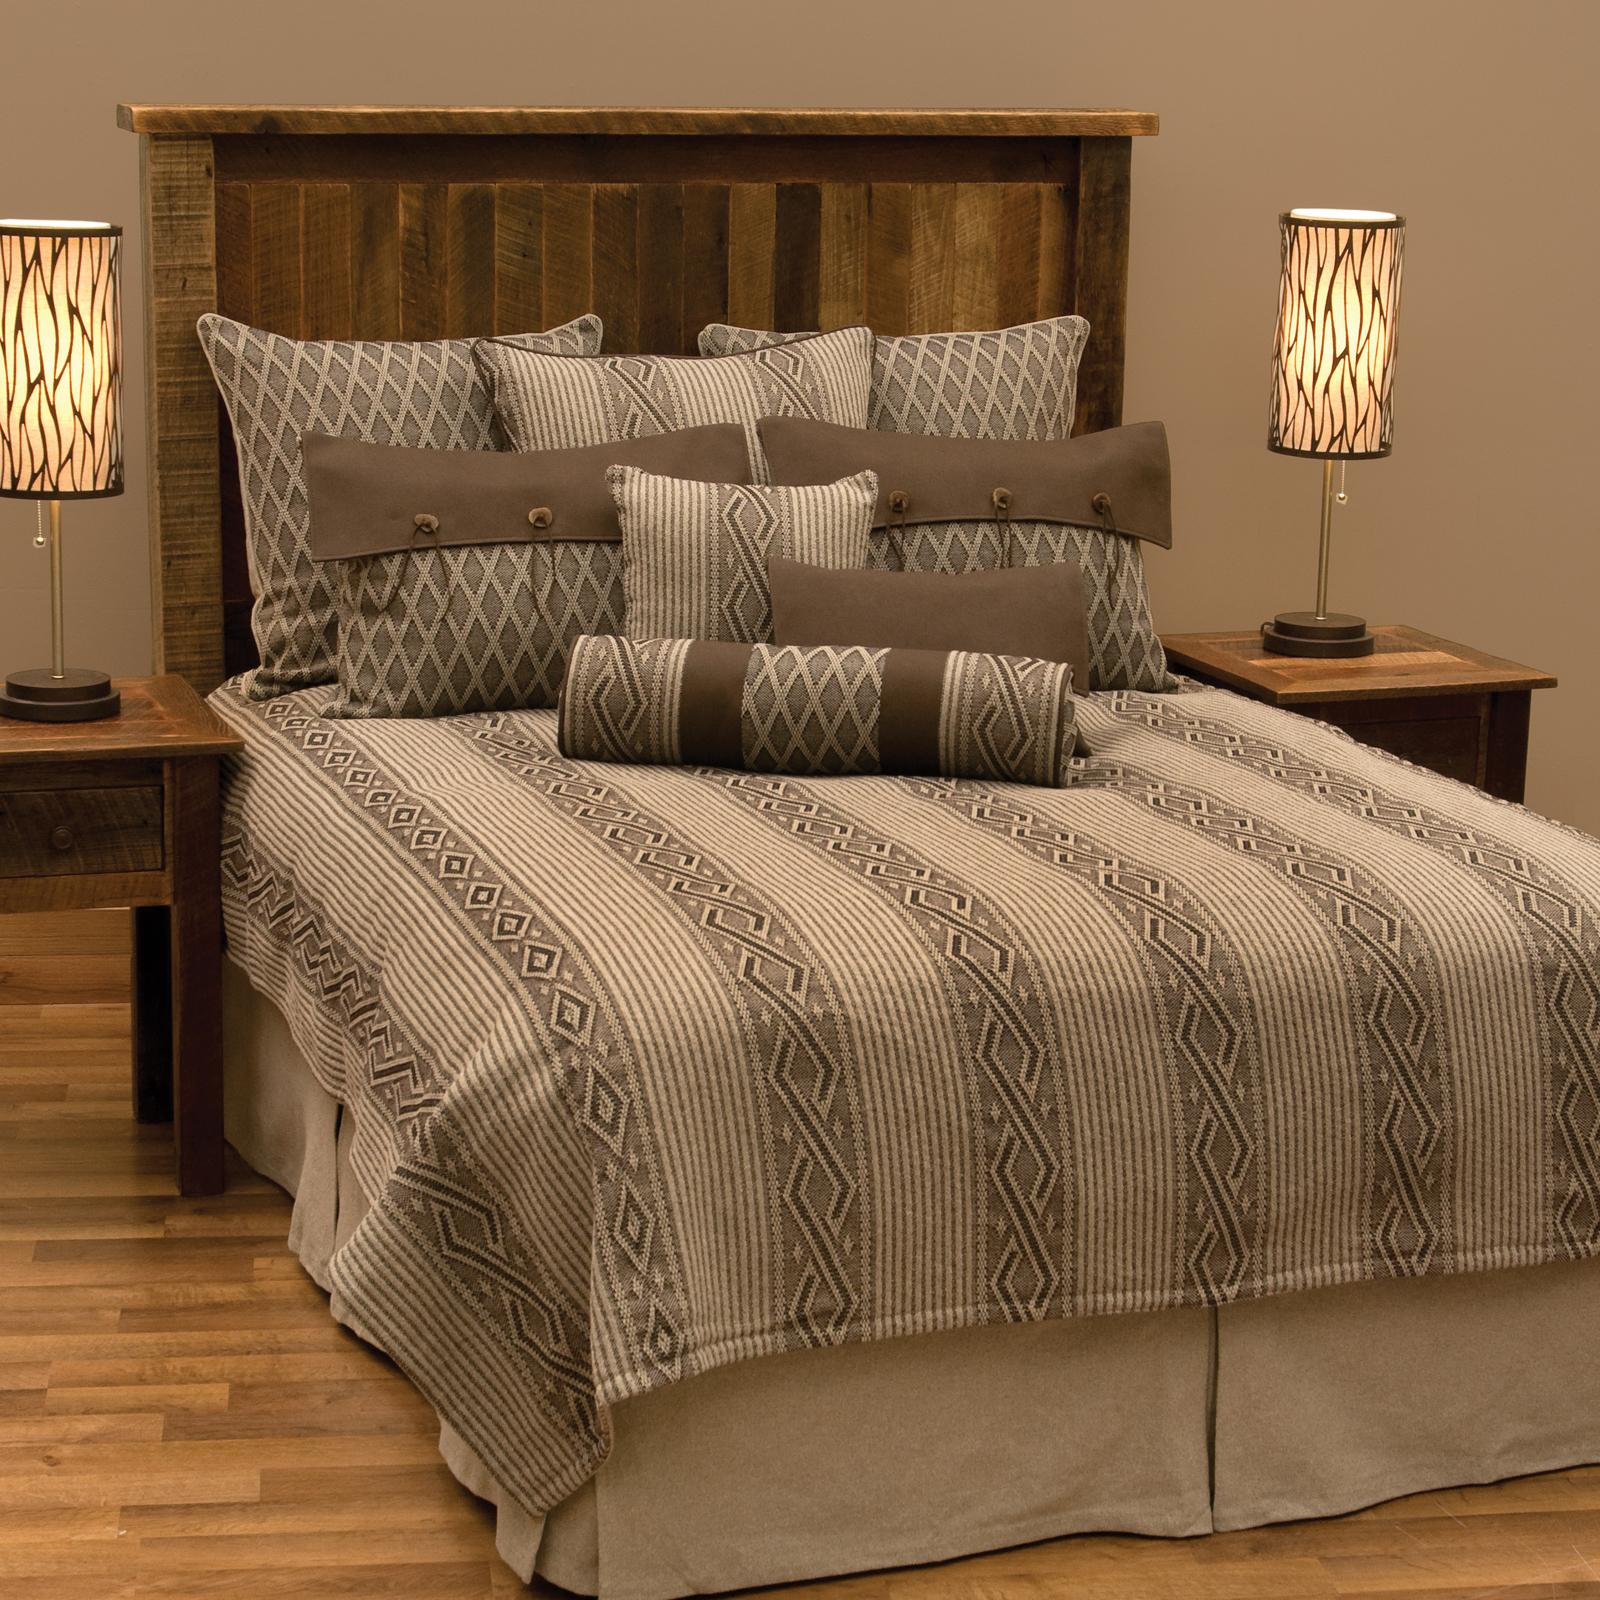 Urban Ranch Bedding Set by Wooded River - WD25810-K